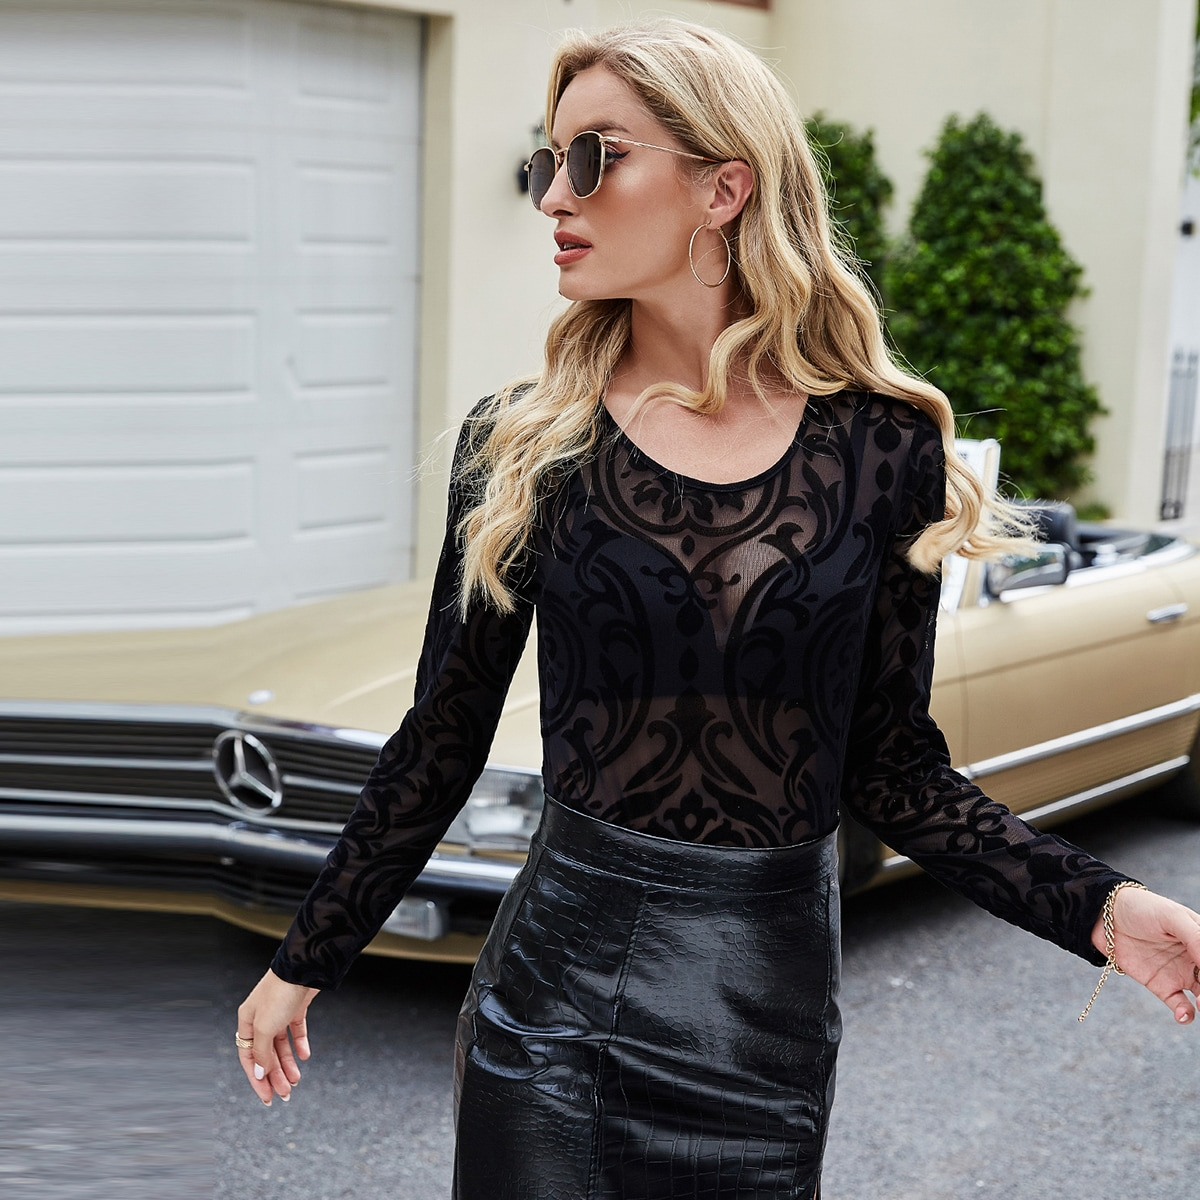 Sheer Mesh Top Without Bra, SHEIN  - buy with discount